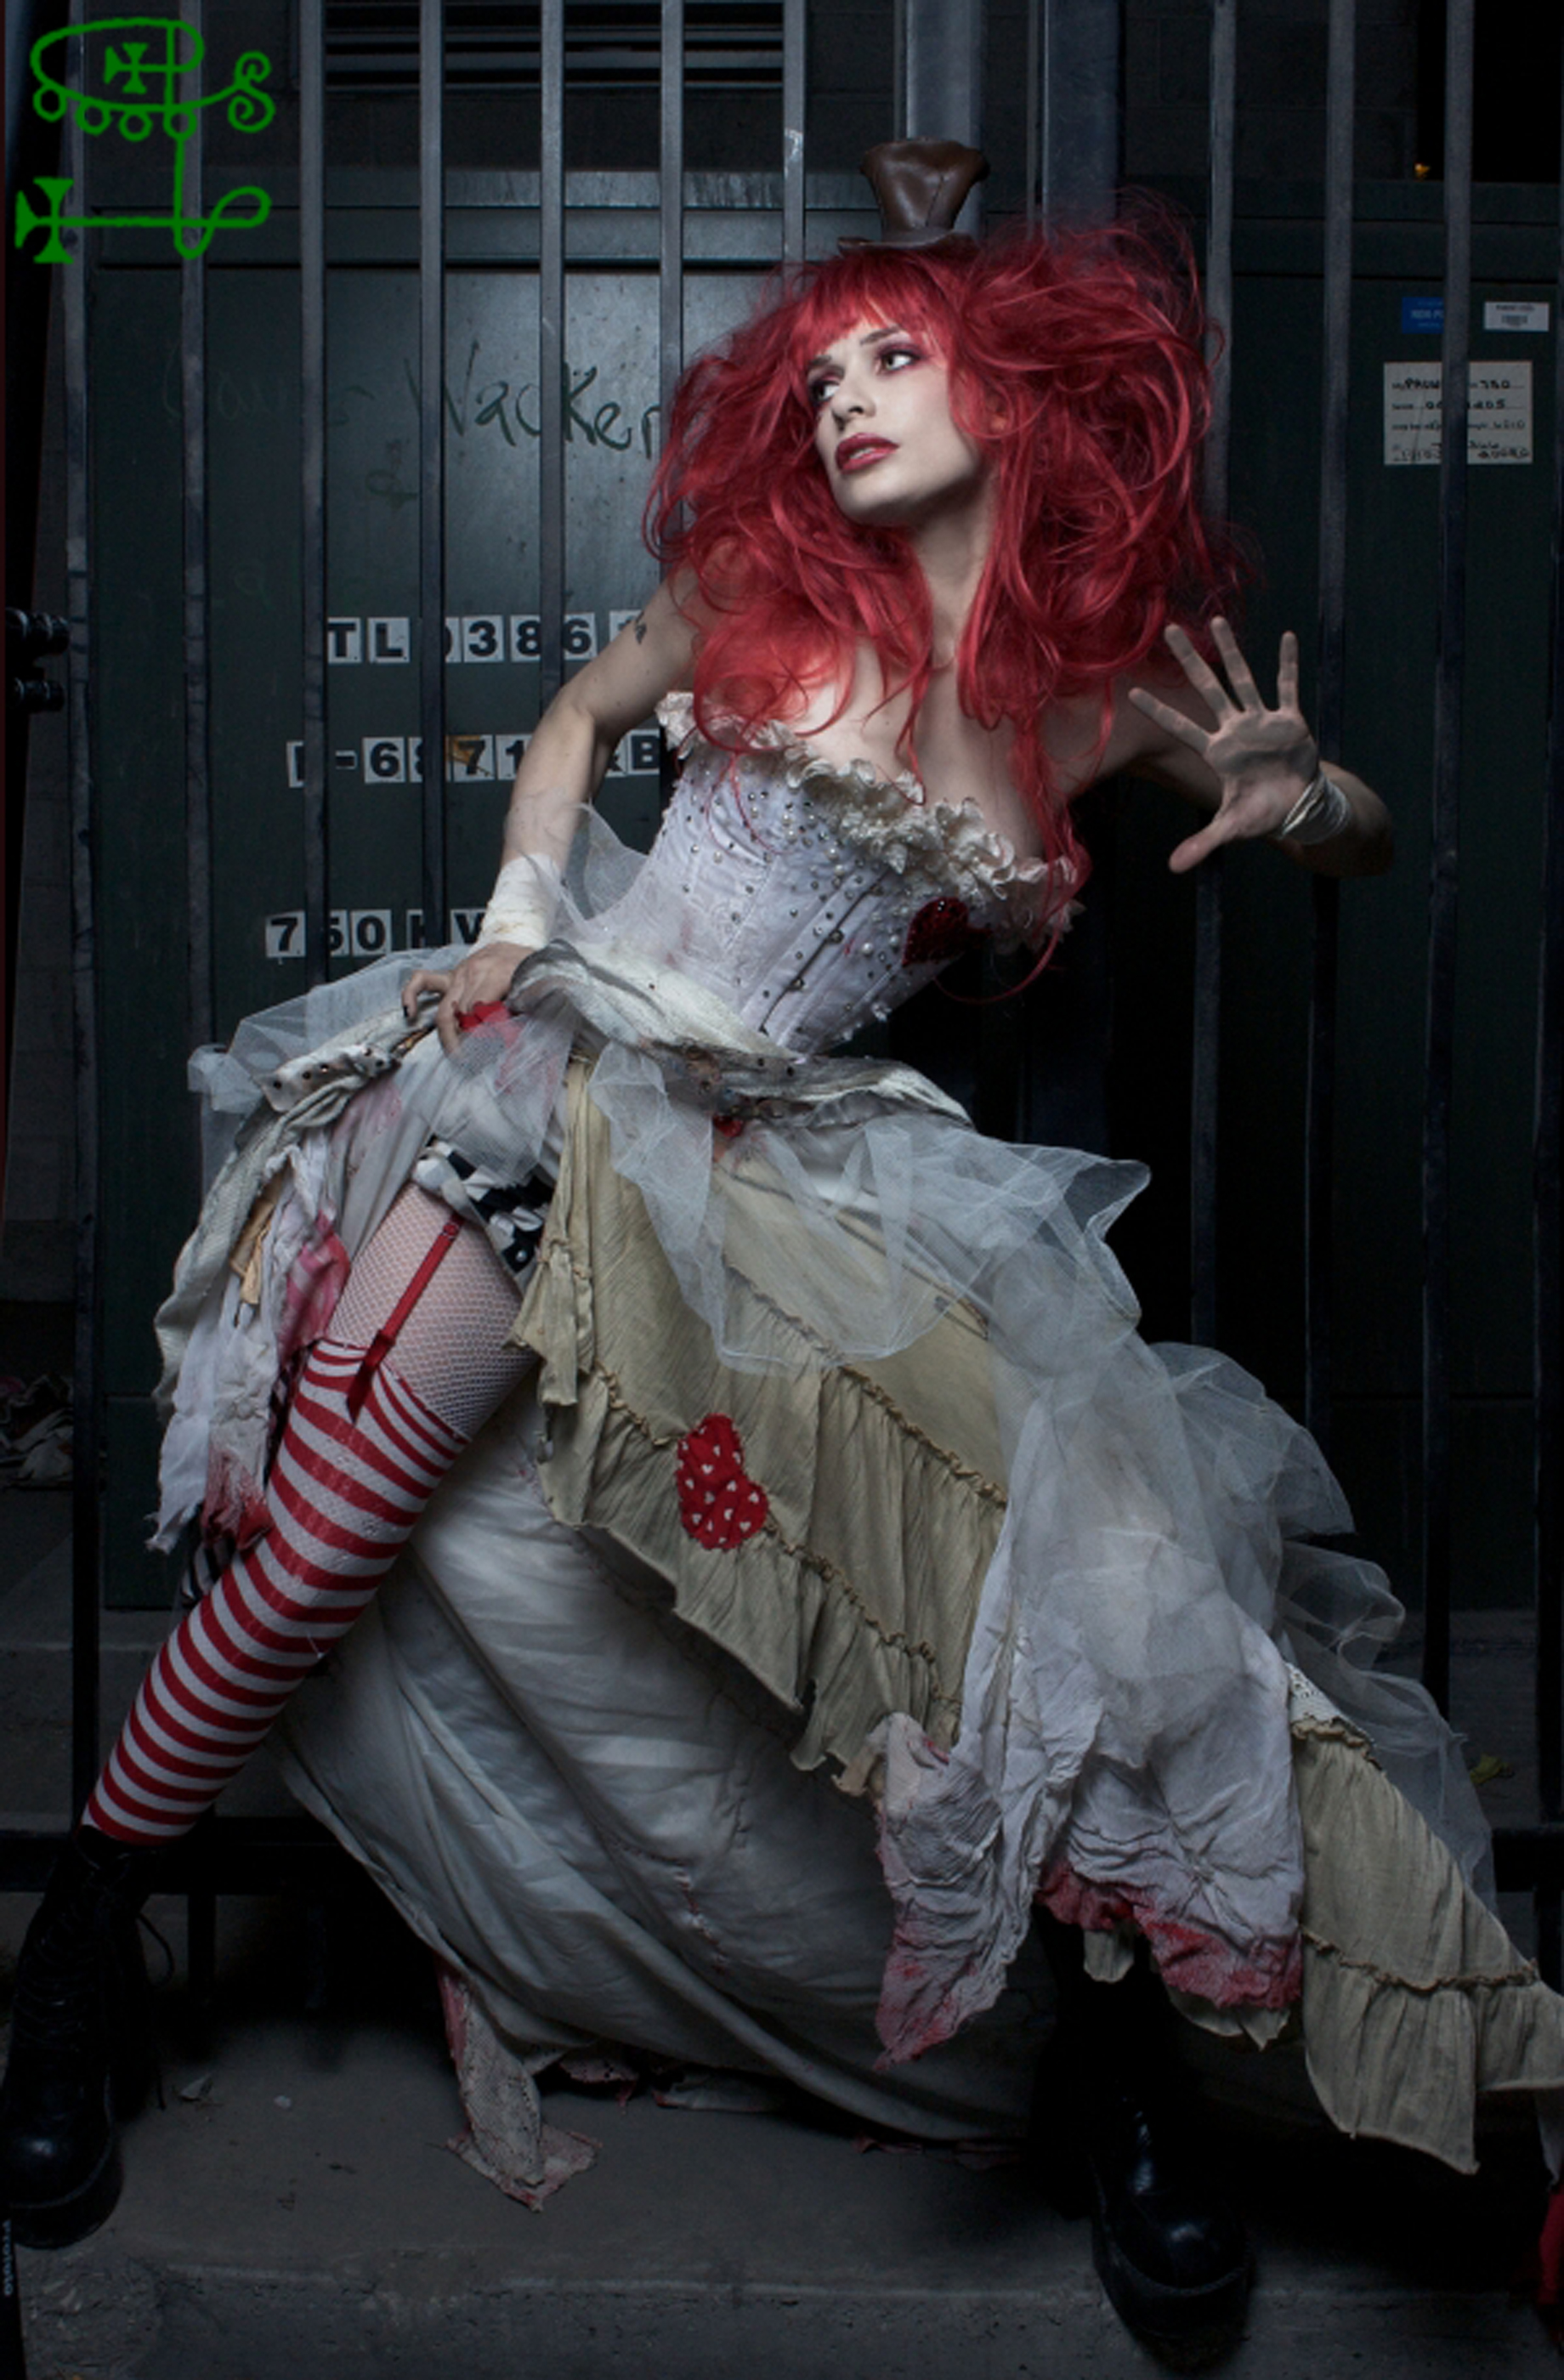 Emilie Autumn The Asylum For Wayward Victorian Girls: GOETIA GIRL STEAMPUNK SUCCUBUS ART MUSE VALEFOR